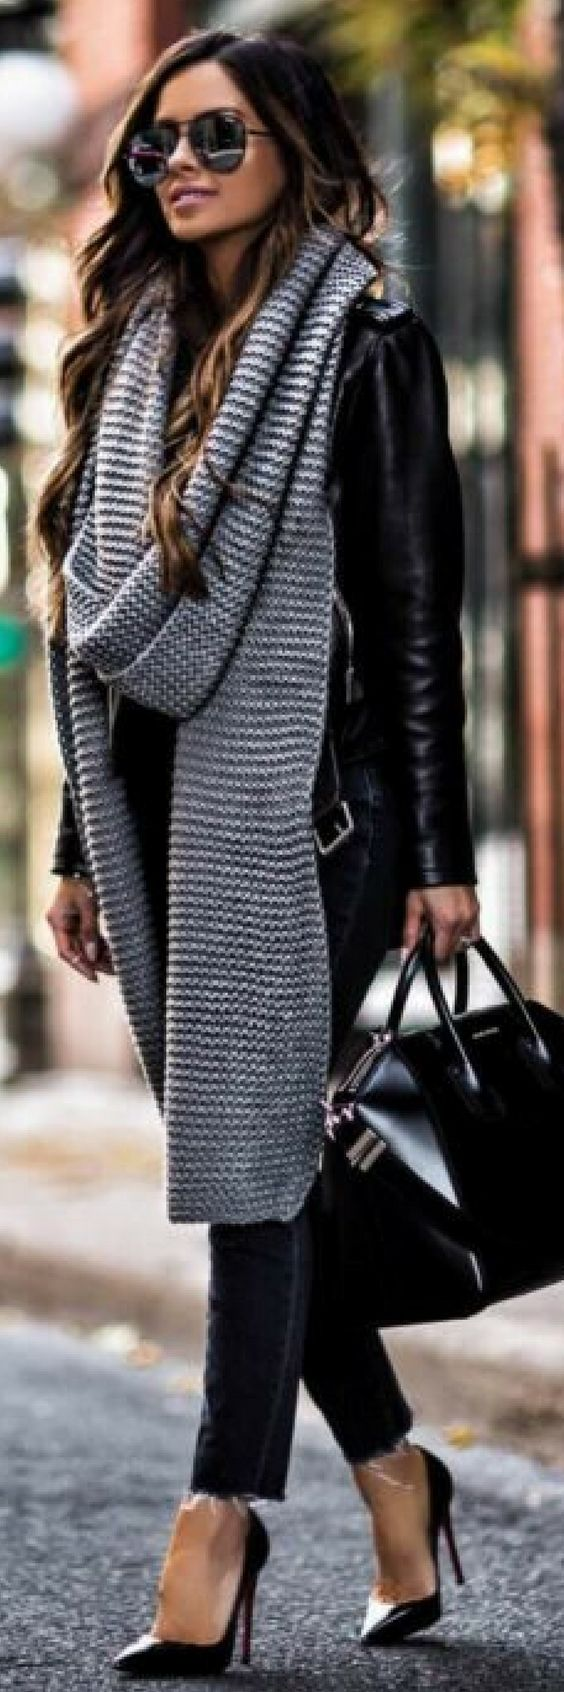 3 Sensational How To Style Fall Outfits That Will Motivate You https://ecstasymodels.blog/2017/11/10/3-sensational-style-fall-outfits/